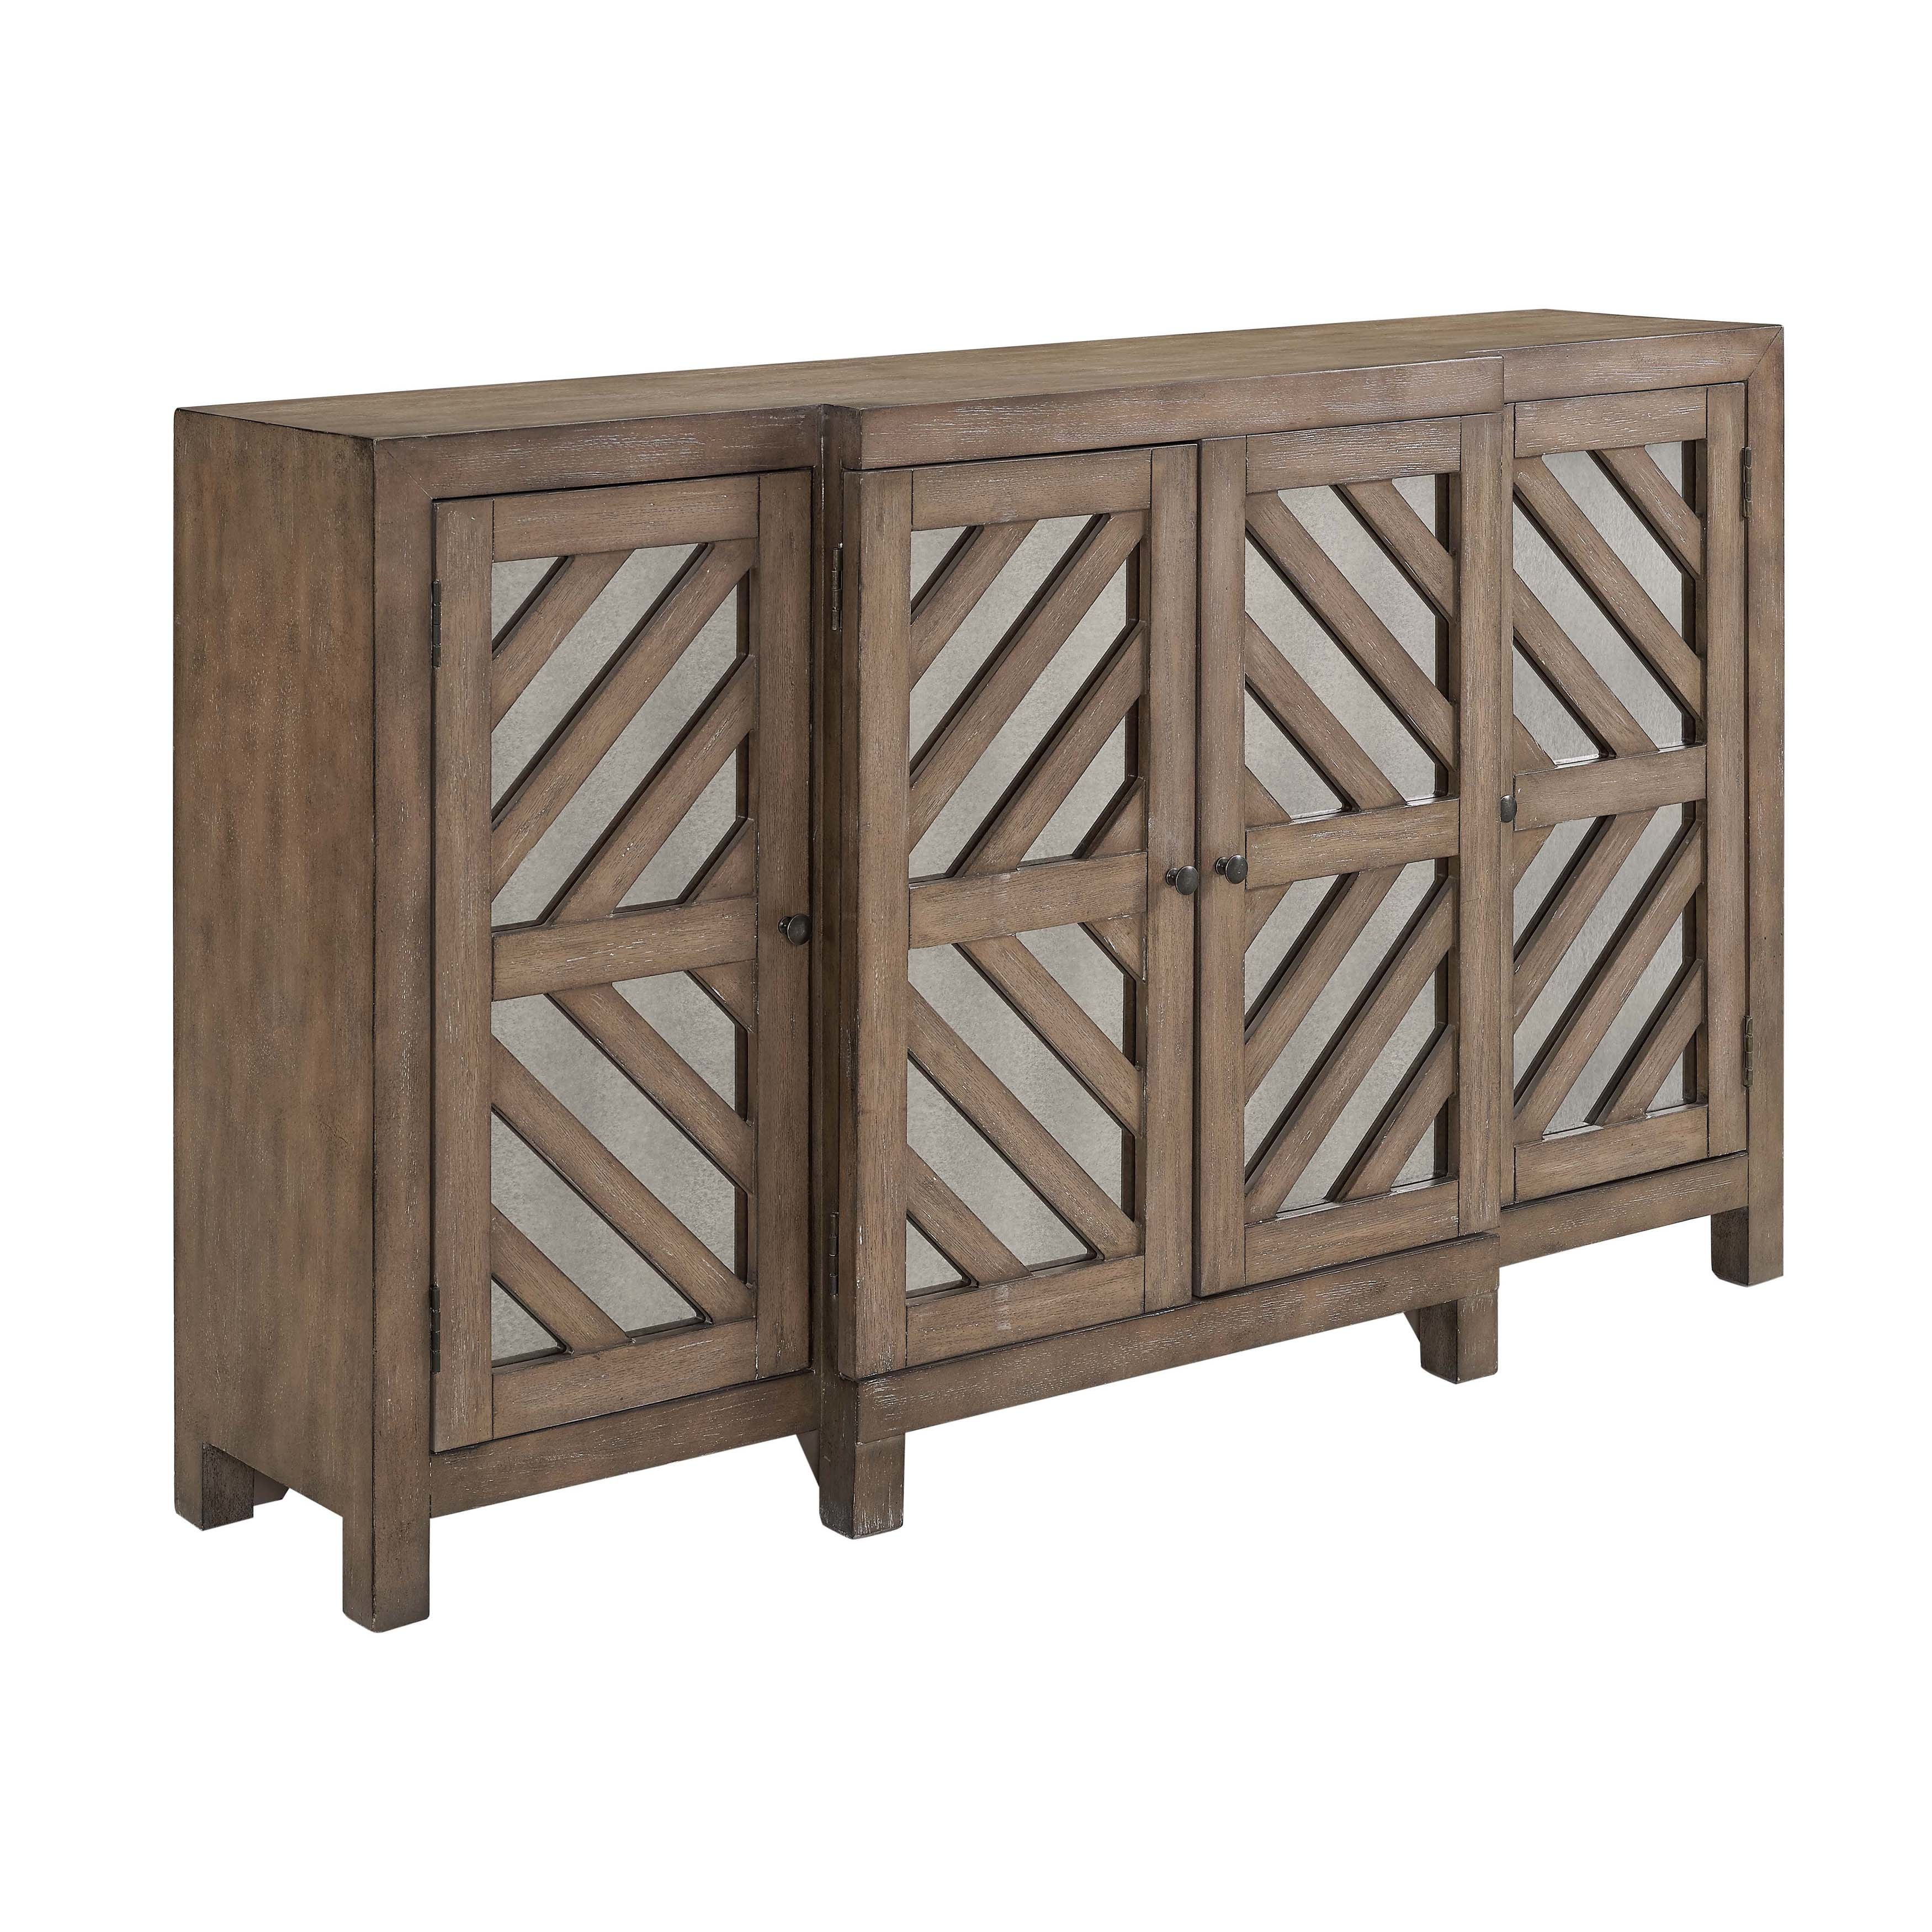 Modern & Contemporary Deny Credenza | Allmodern With Recent Lainey Credenzas (#18 of 20)